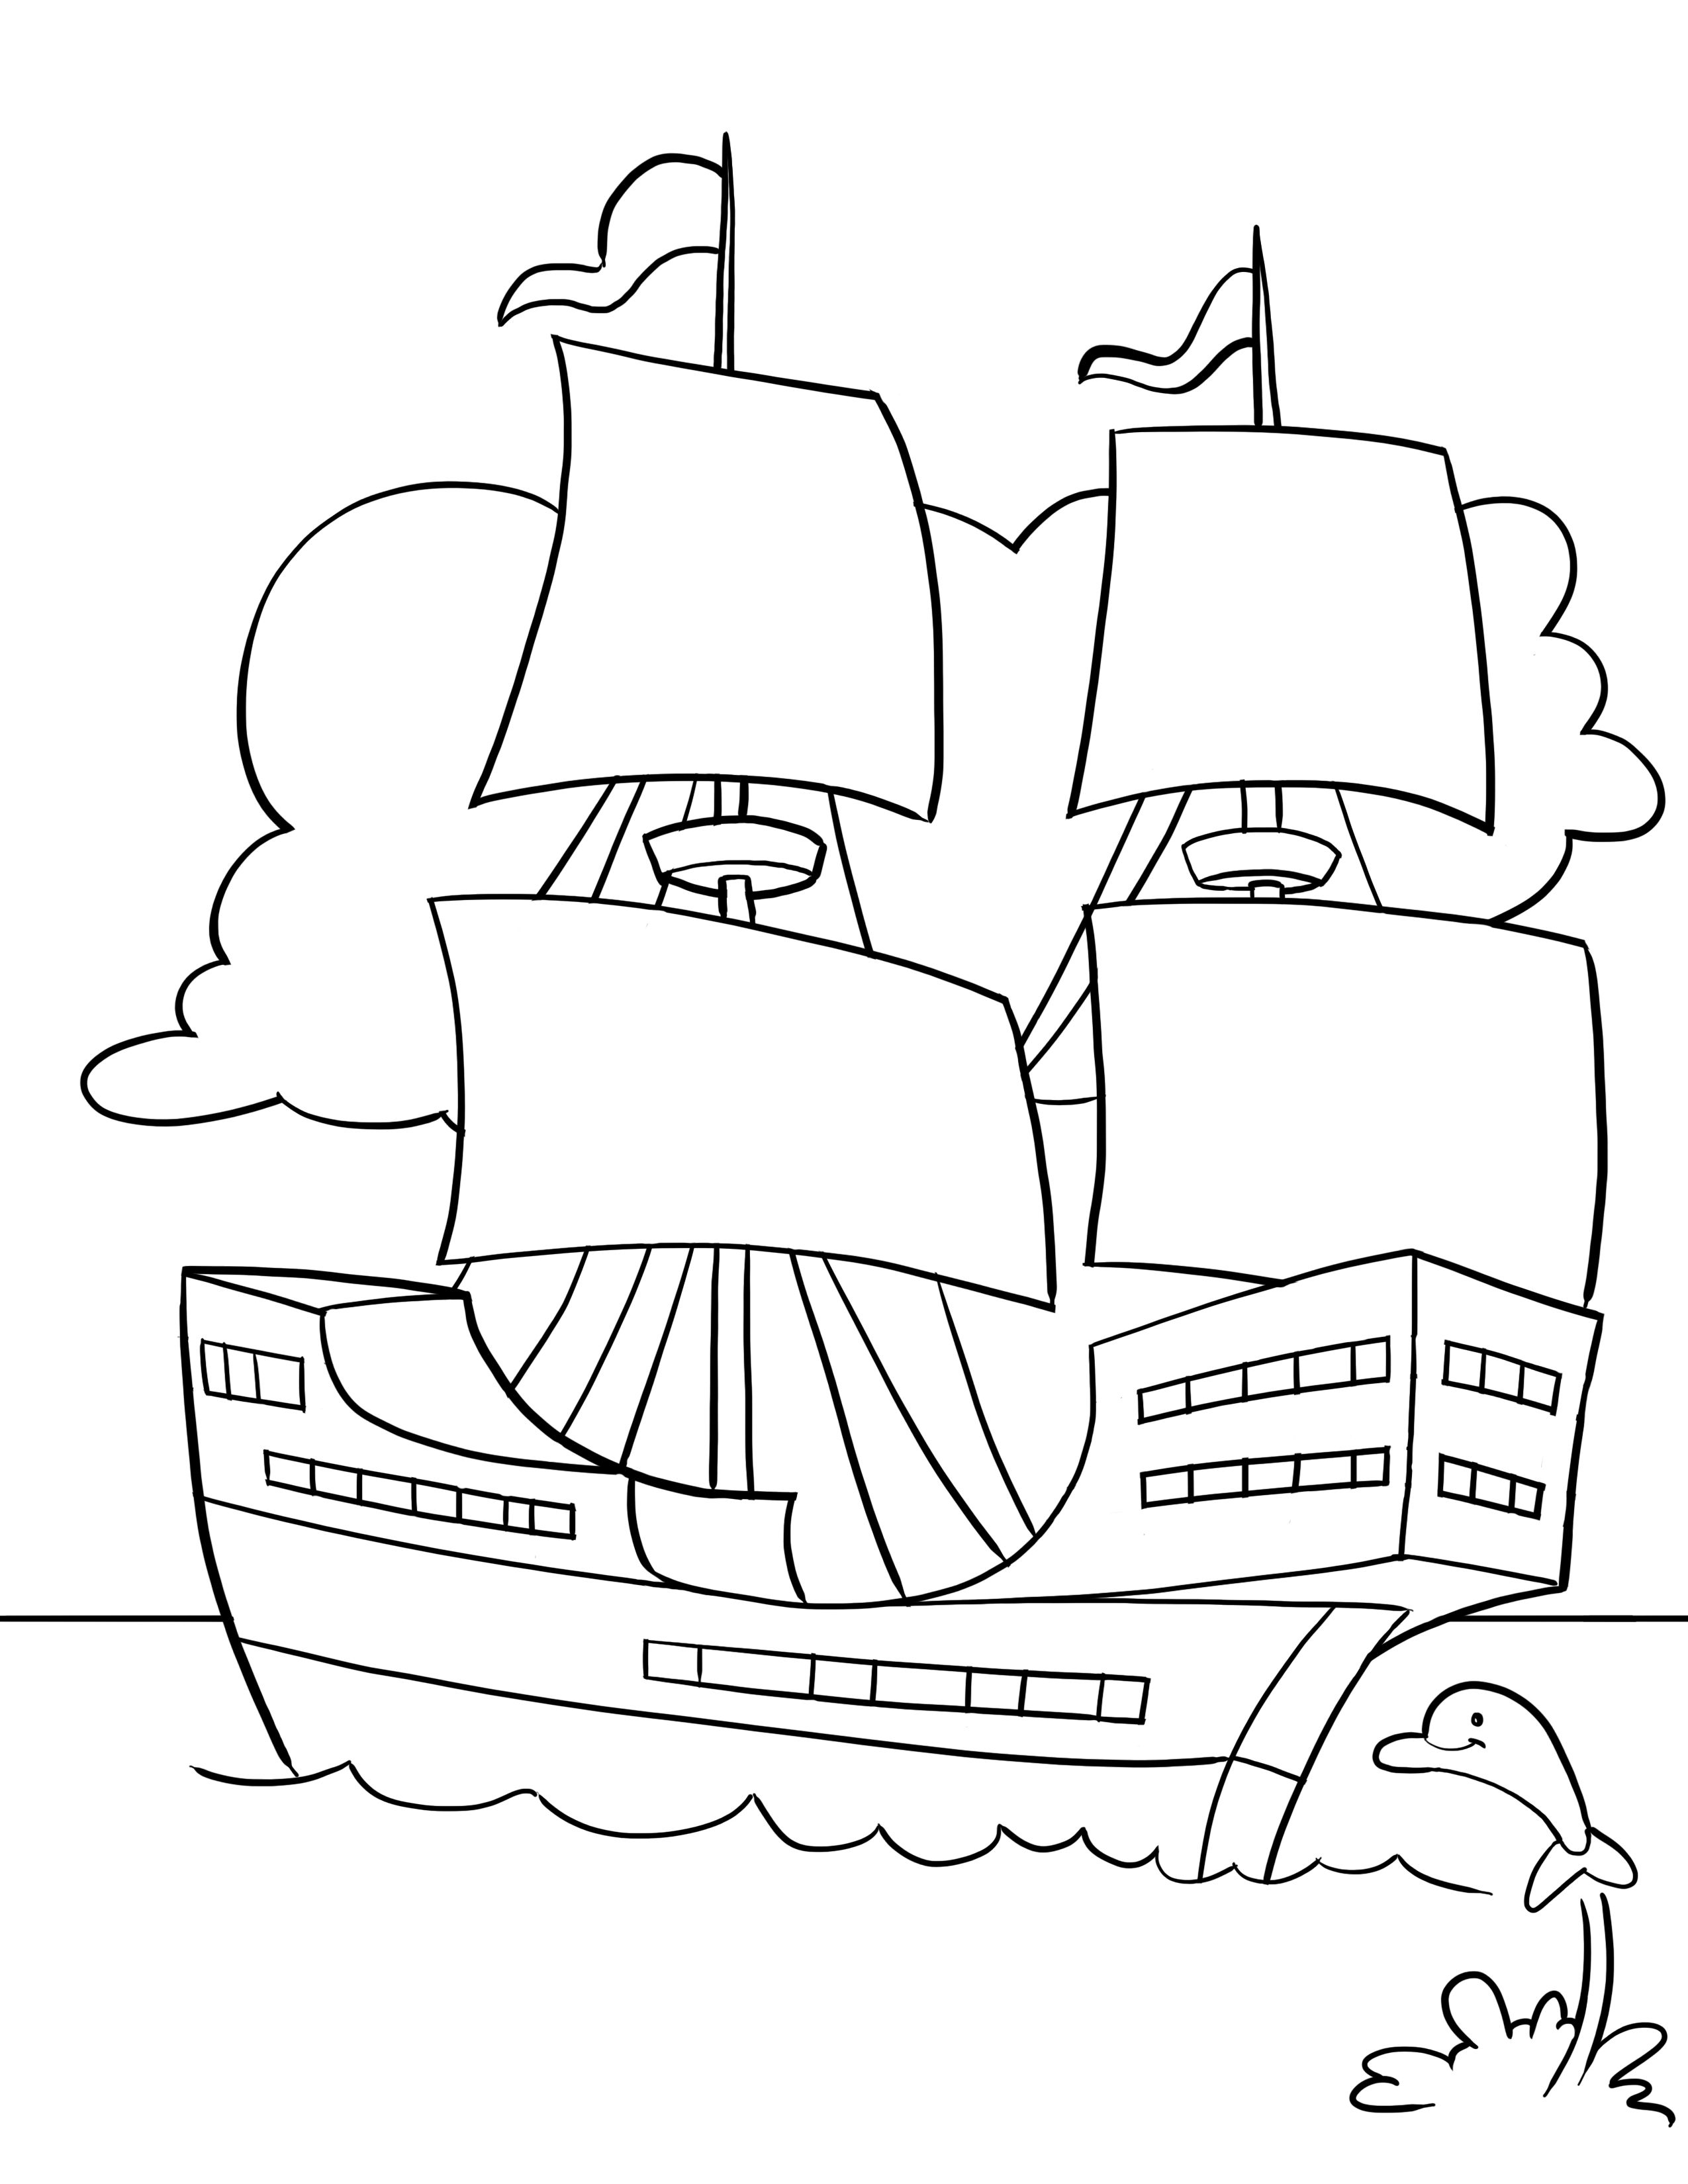 cool childrens coloring book Special Picture | Colouring Pages ...